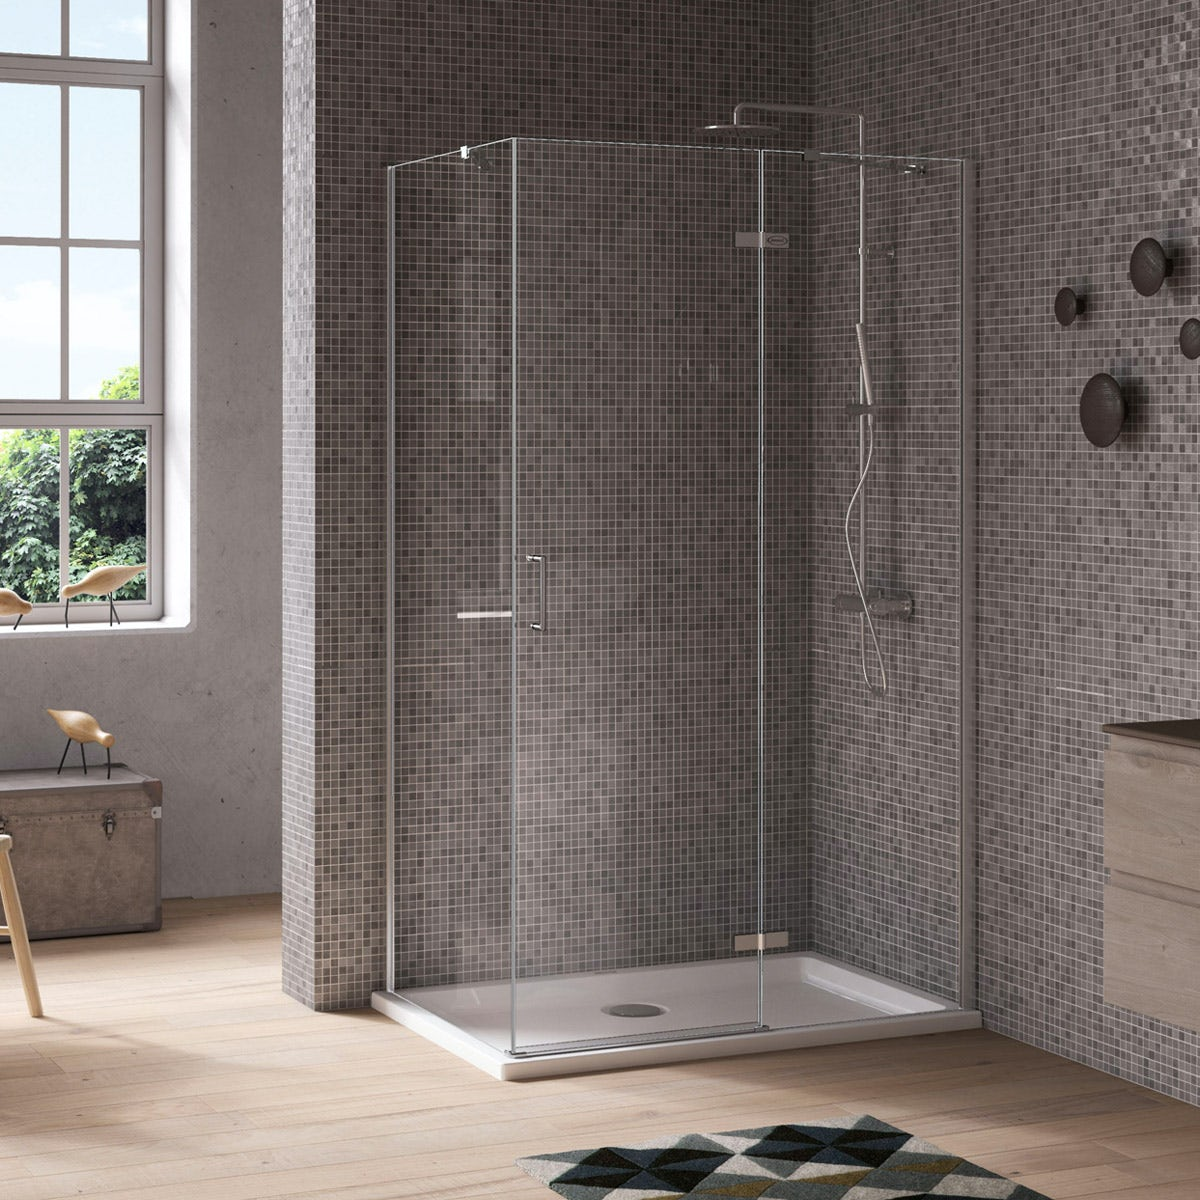 1000 Ideas About Enclosed Bed On Pinterest: Jacuzzi The Essentials Hinged Door Shower Enclosure